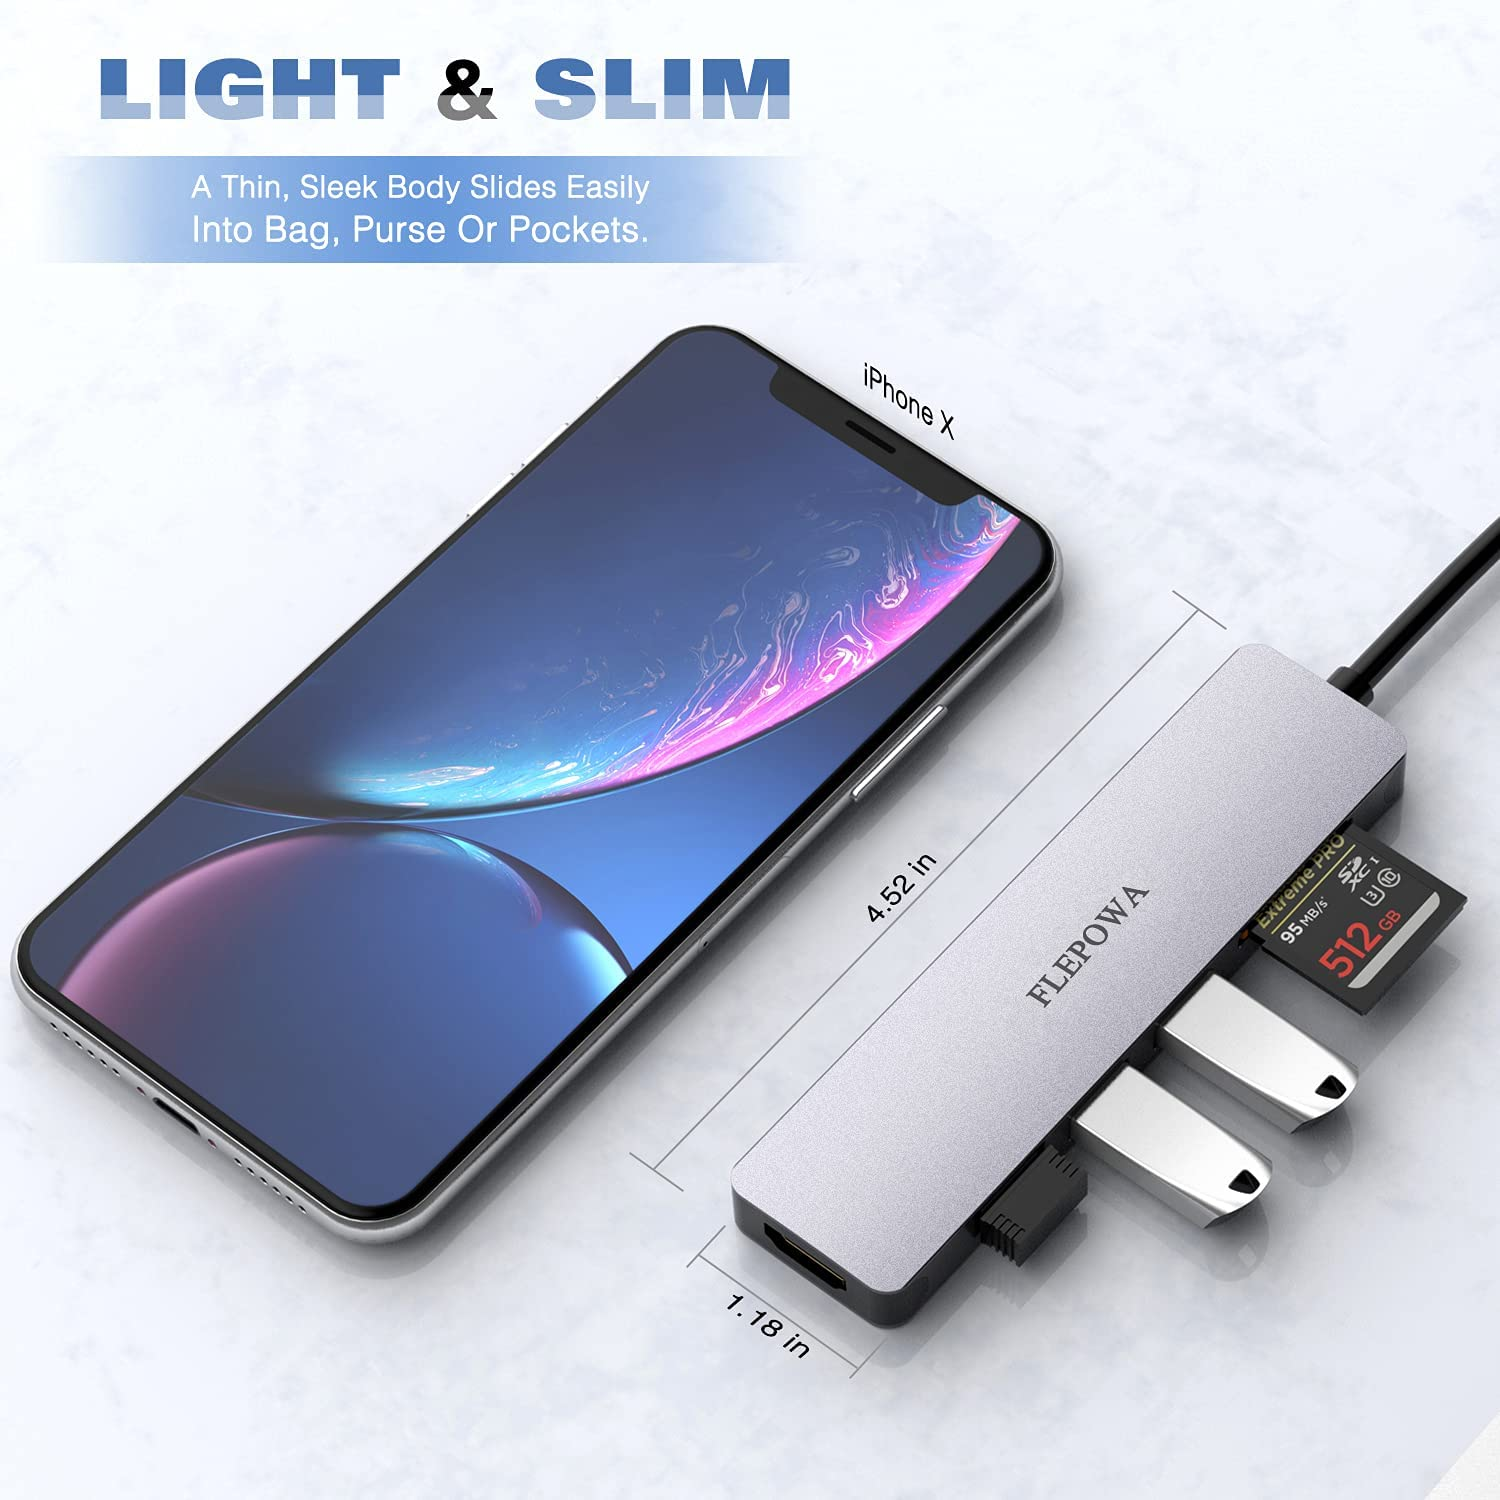 USB C Hub Multiport Adapter - Portable USB C Adapter with 4K HDMI Output, 3 USB 3.0 Ports, SD/Micro SD Card Reader for MacBook Pro, Chromebook, XPS & More Type C Devices, Space Grey